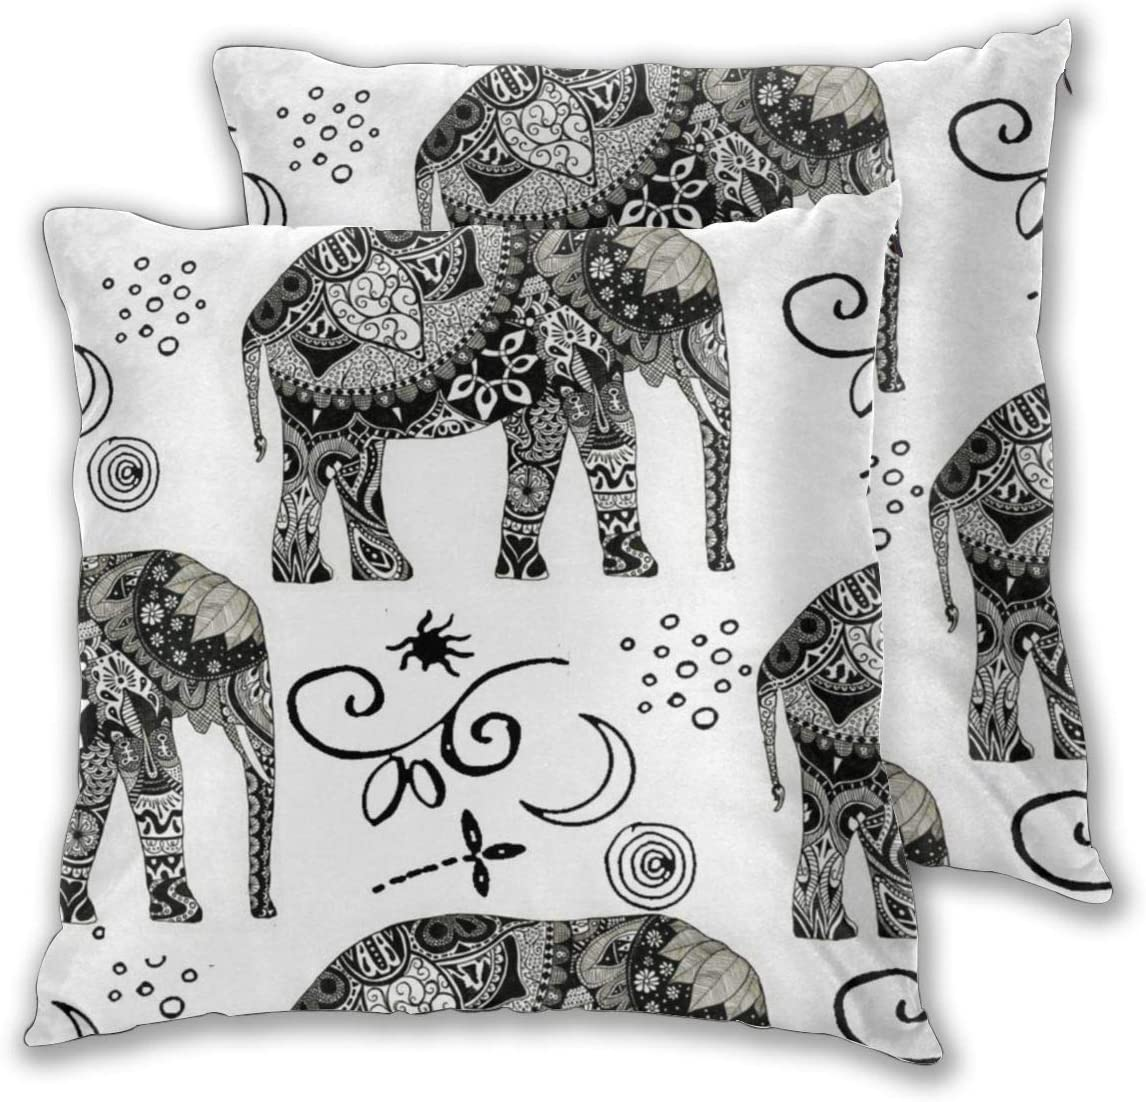 MOONLIT DECAYED Bohemian Elephant Boho White 2PCS Square Printed 20 X 20 inches Decorative Throw Pillows Covers Square Cushion Cases for Sofa Chair Car Bench Bed Office Bar Indoor Outdoor Home Party